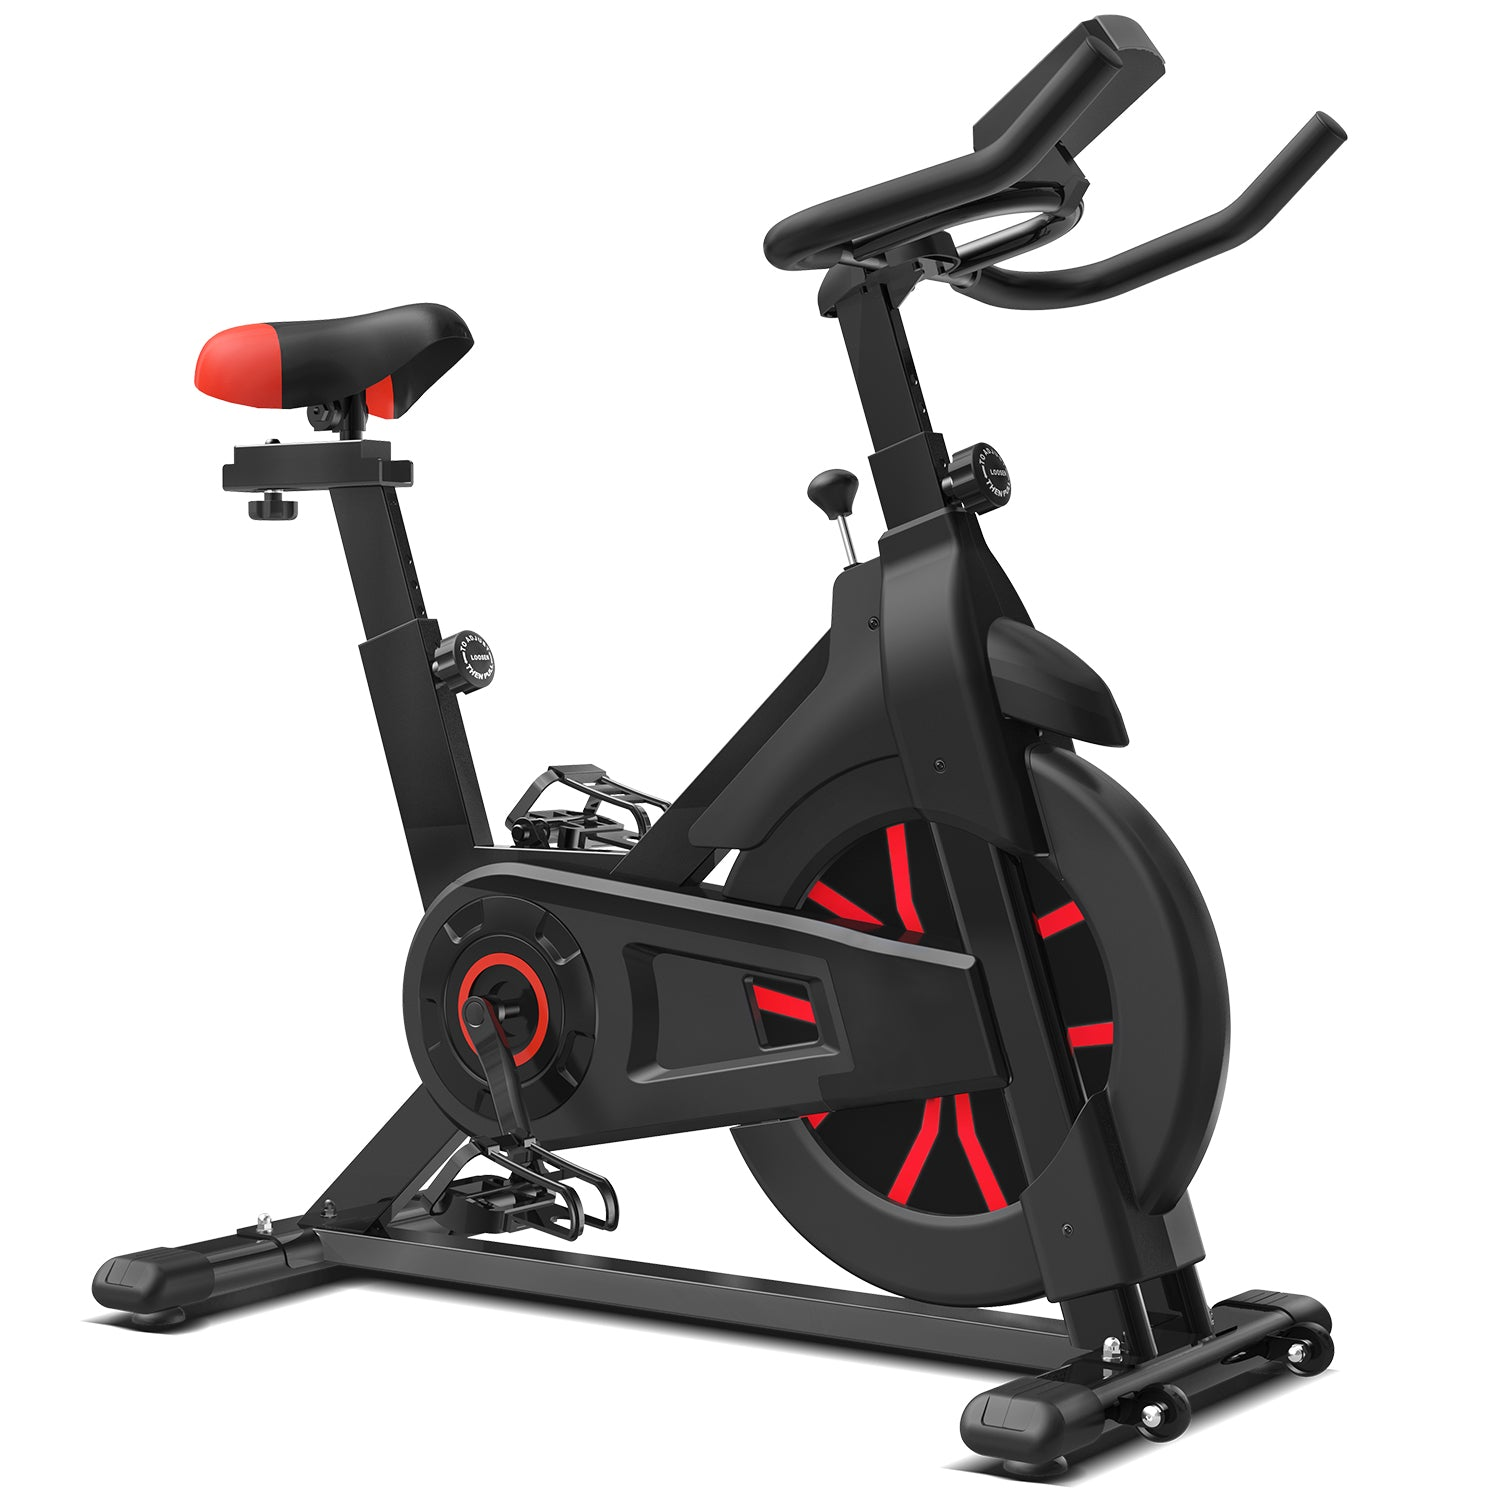 SP-330 Spin Bike